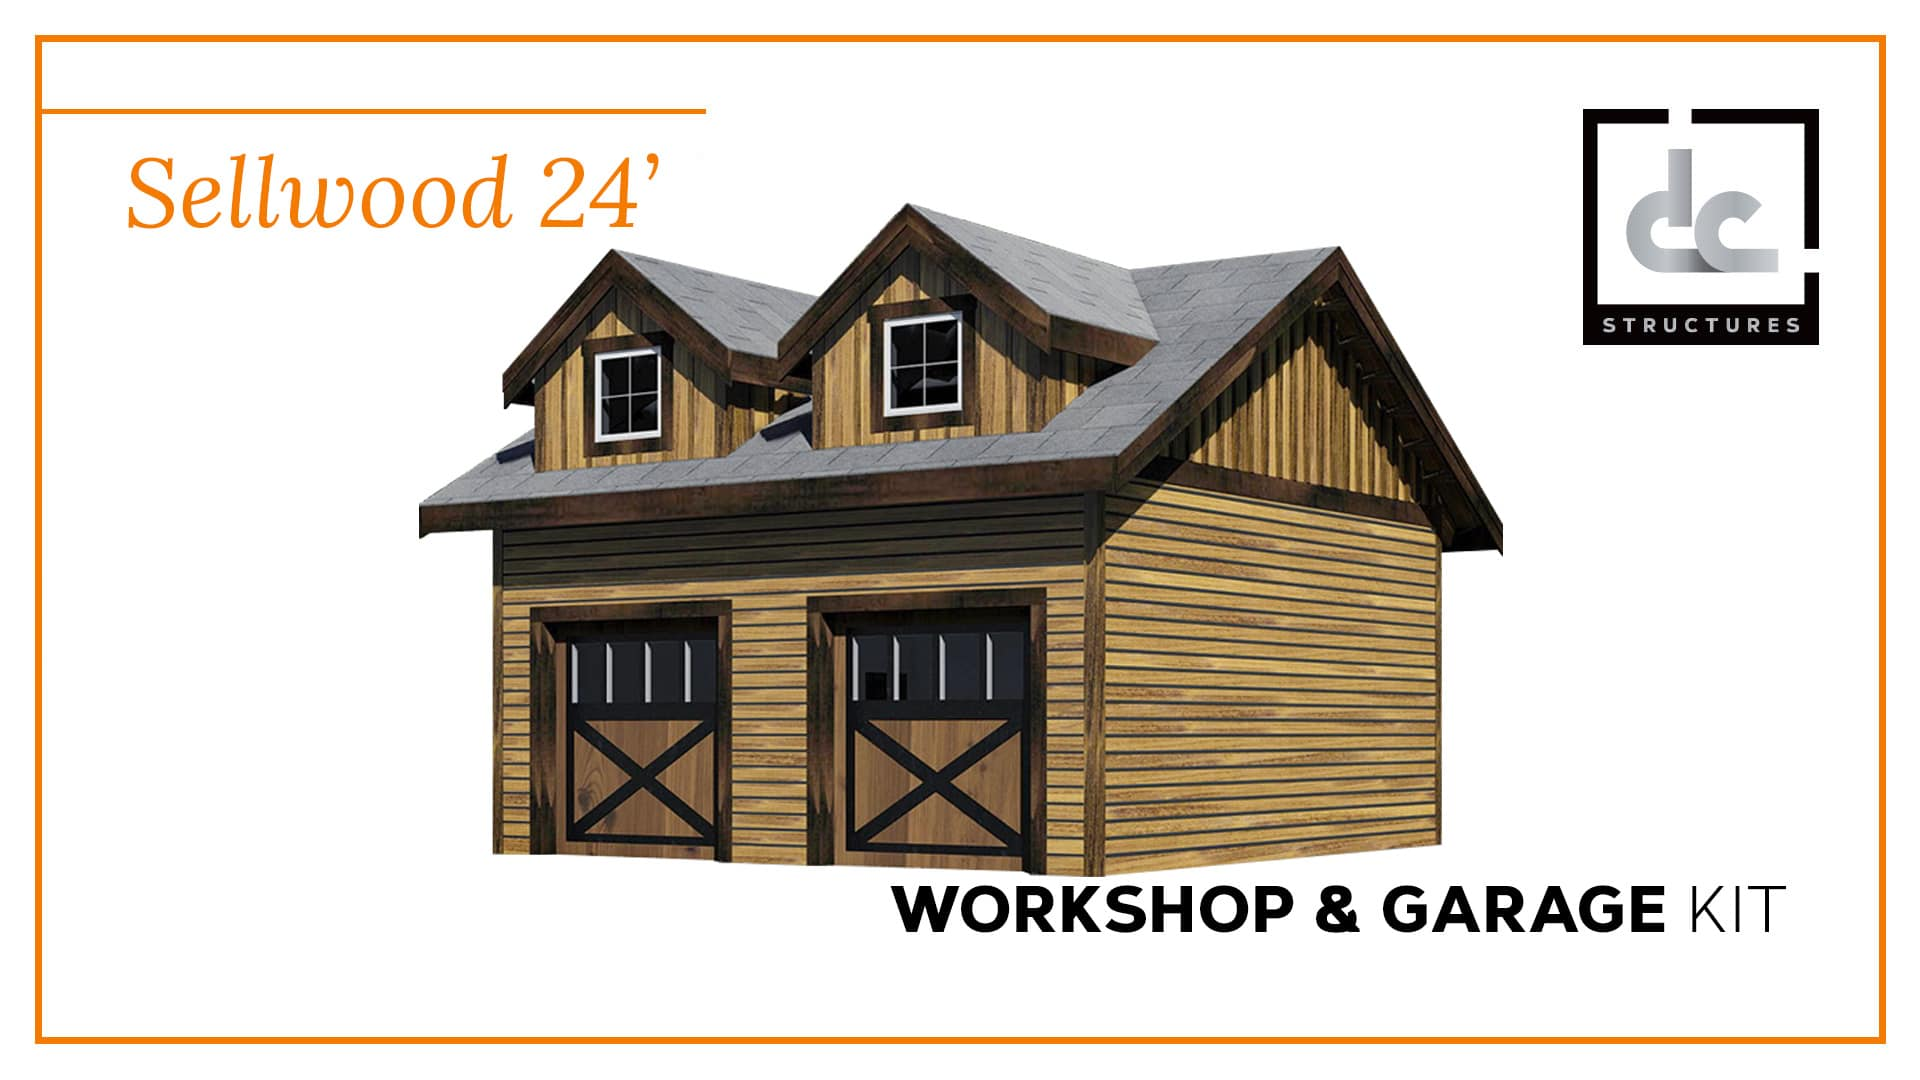 Sellwood garage kit 24 39 dc structures for 24 by 24 garage kit